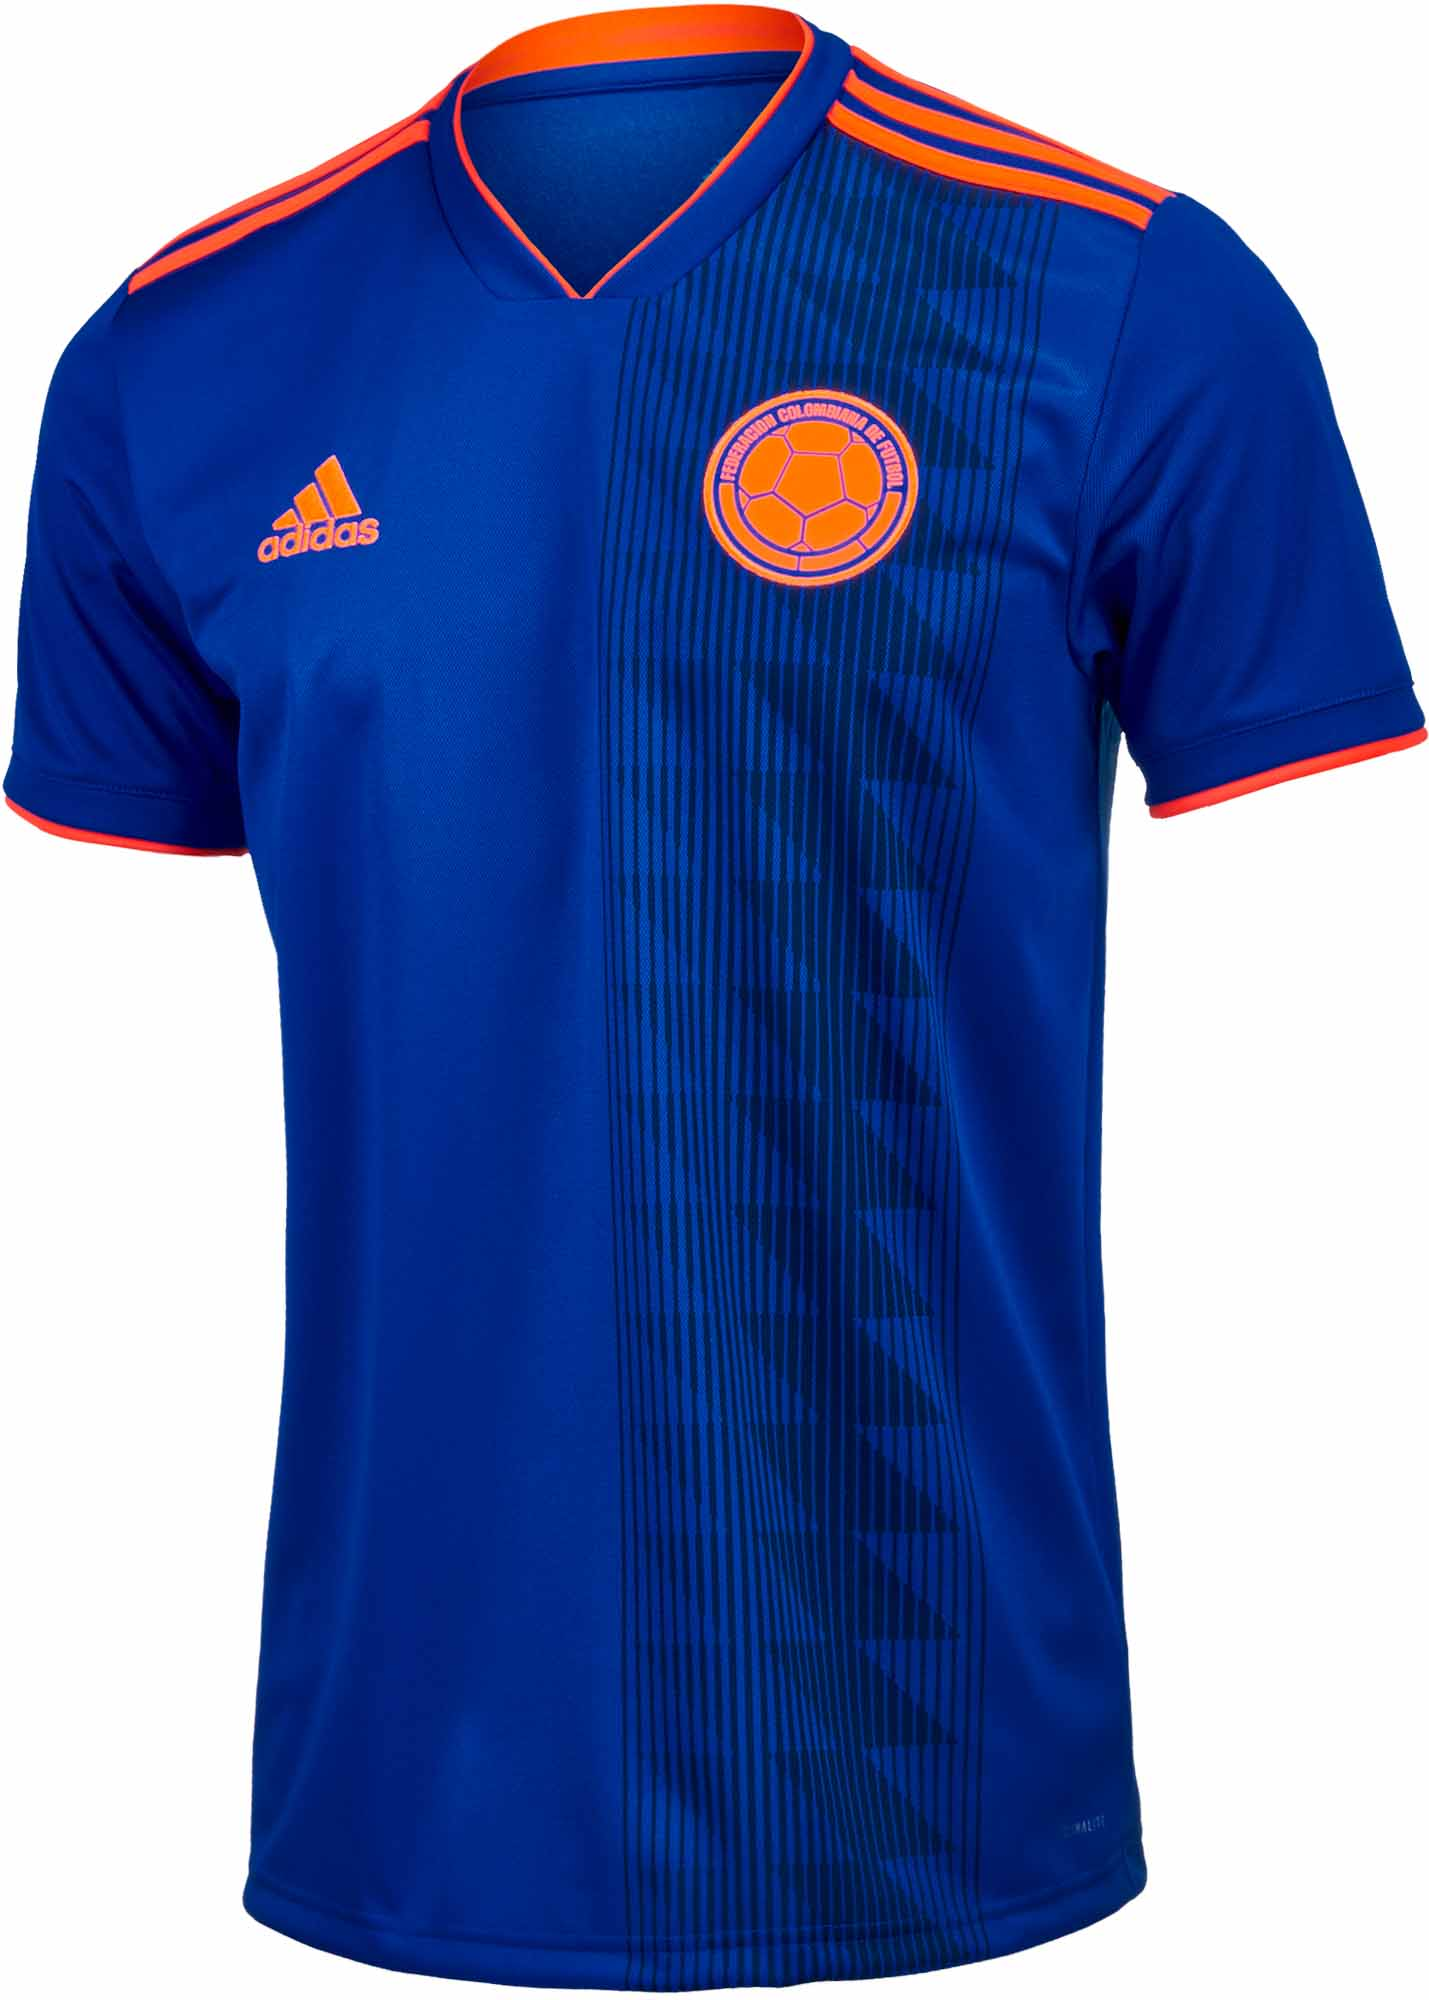 adidas Colombia Away Jersey 2018-19 - SoccerPro.com 39994d633